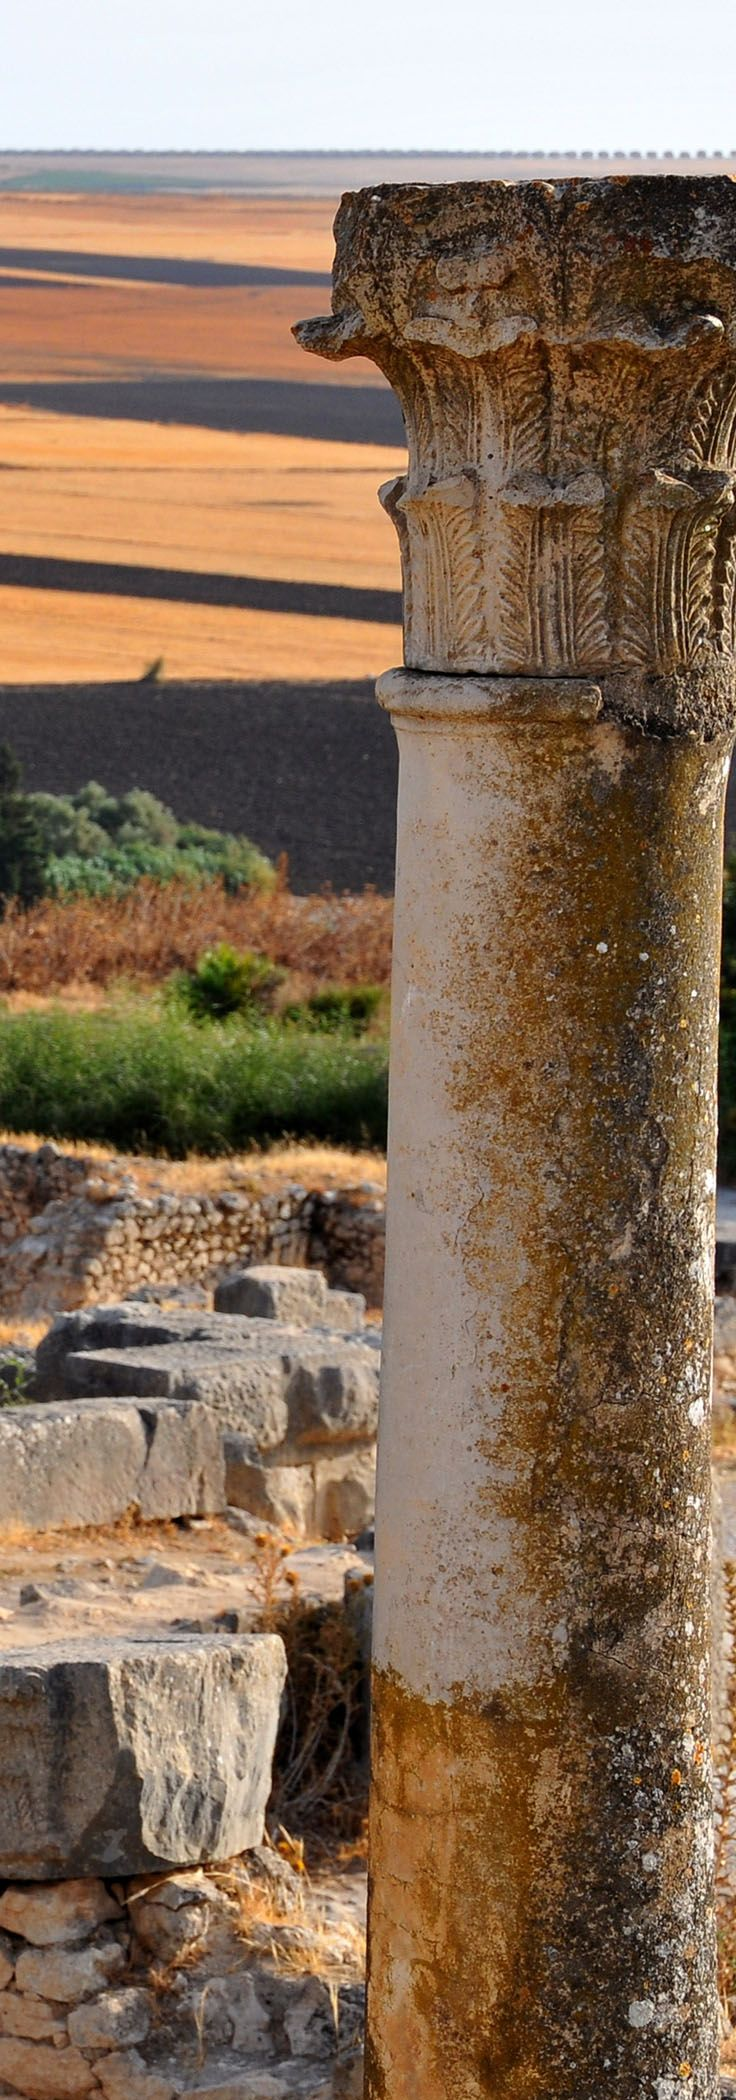 Archaeological Site of Volubilis - Morocco | Africa